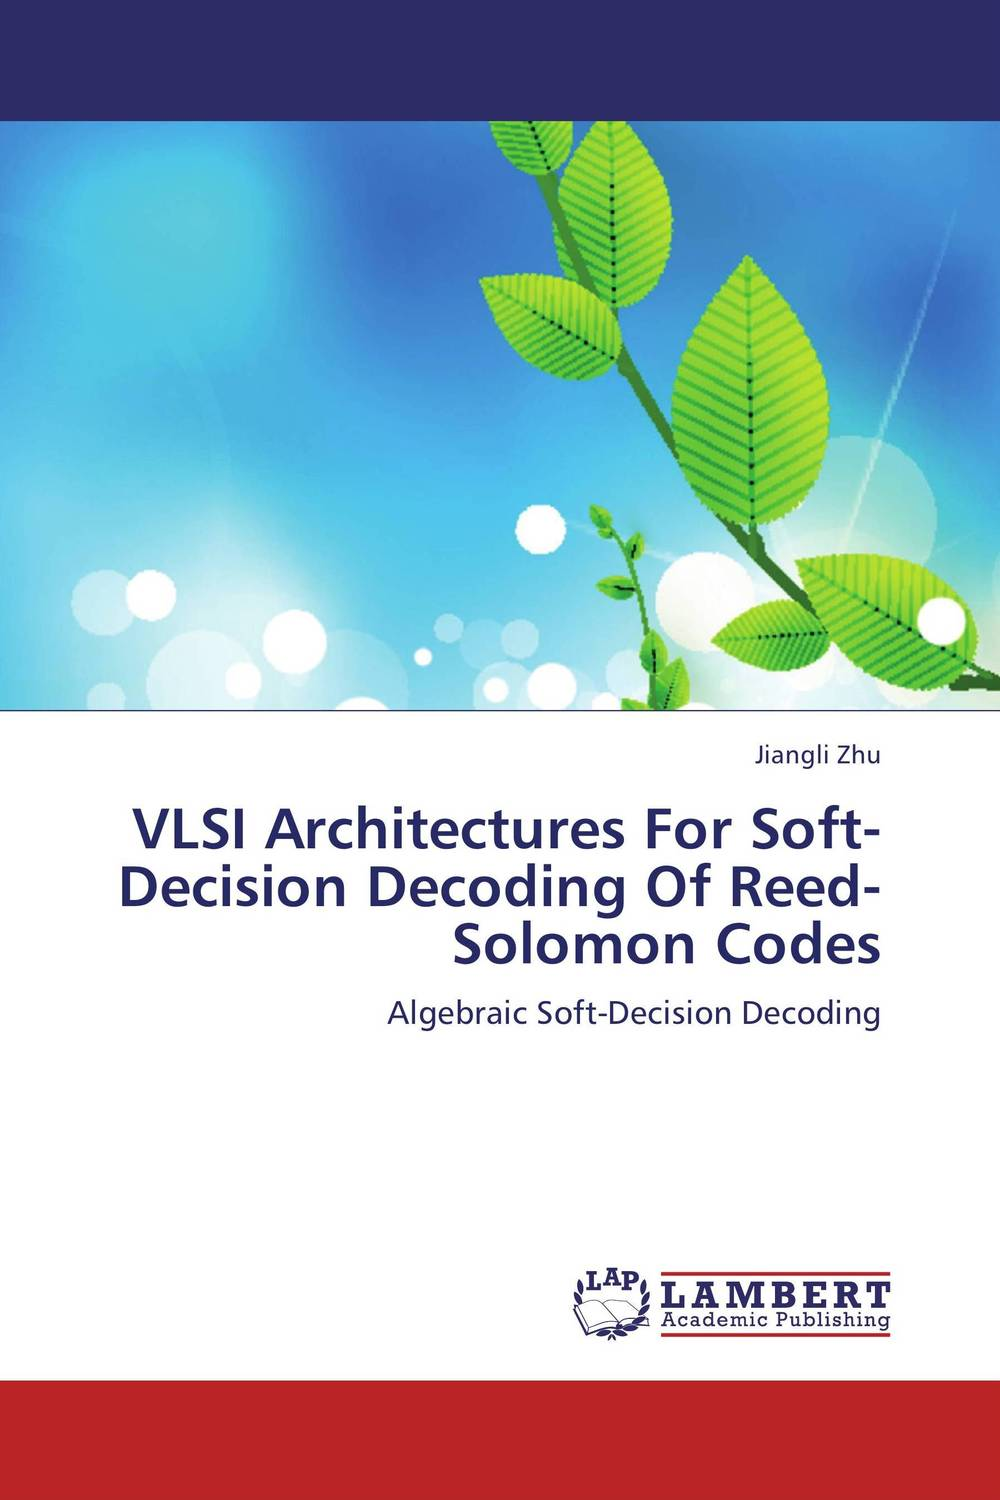 VLSI Architectures For Soft-Decision Decoding Of Reed-Solomon Codes mapping of algorithms on parallel architectures